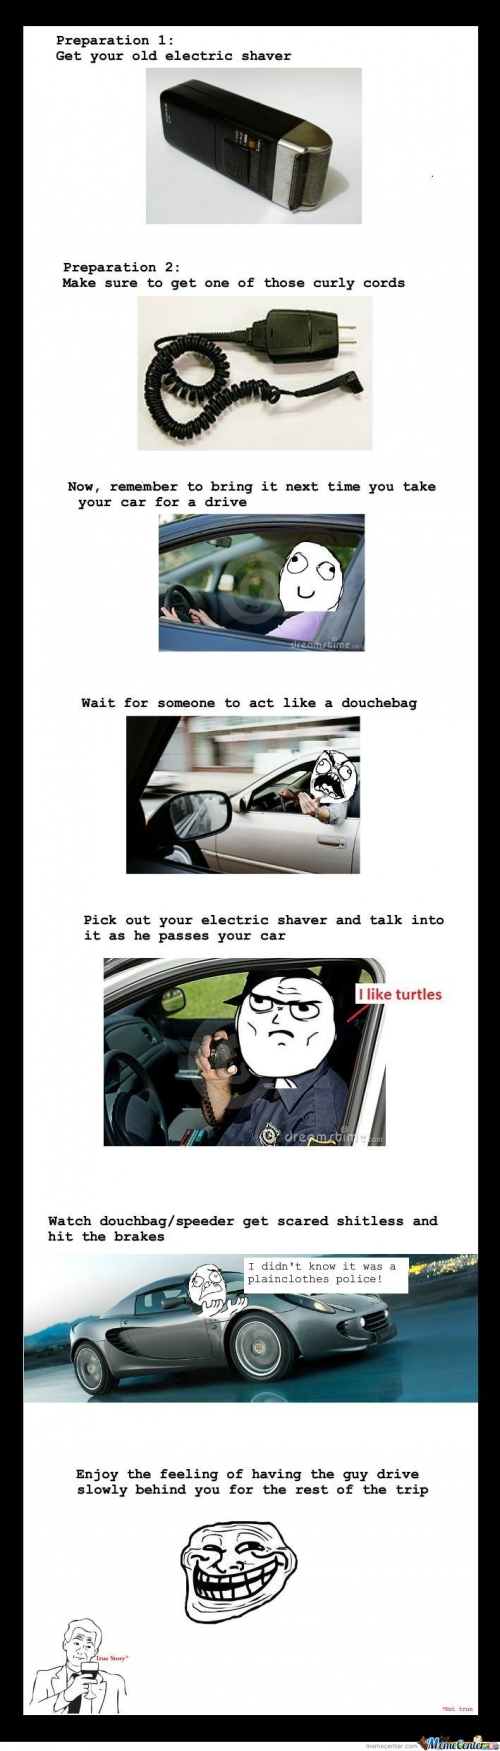 HOW TO: Troll Bad Drivers